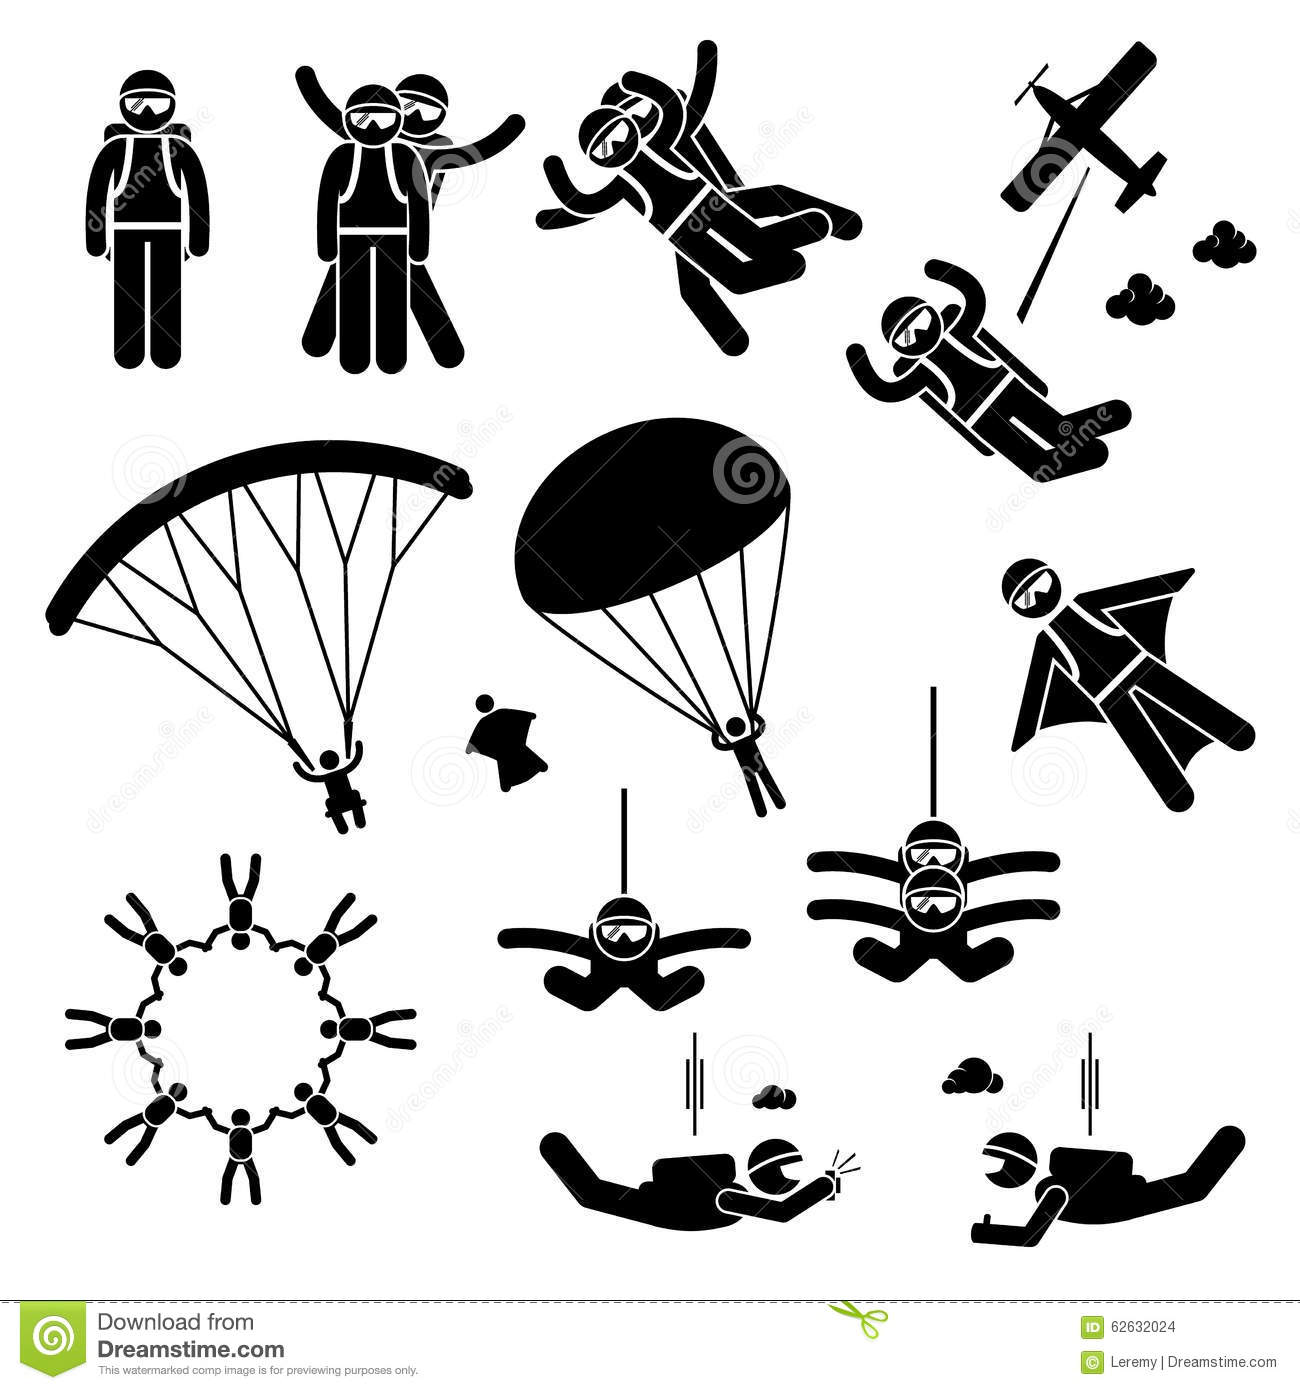 Skydiving Skydives Skydiver Parachute Wingsuit Clipart